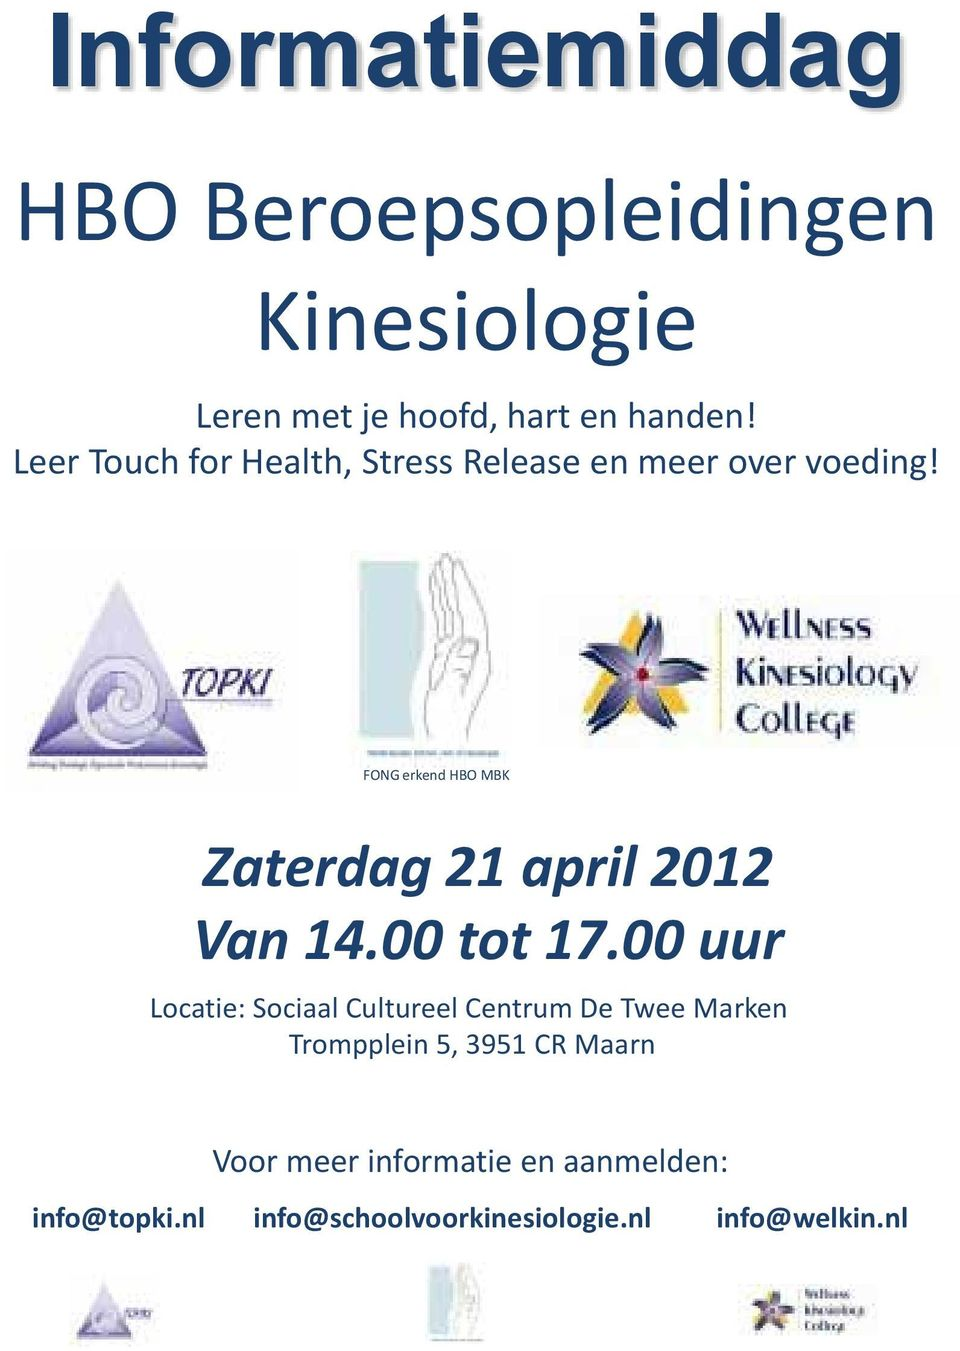 FONG erkend HBO MBK Zaterdag 21 april 2012 Van 14.00 tot 17.